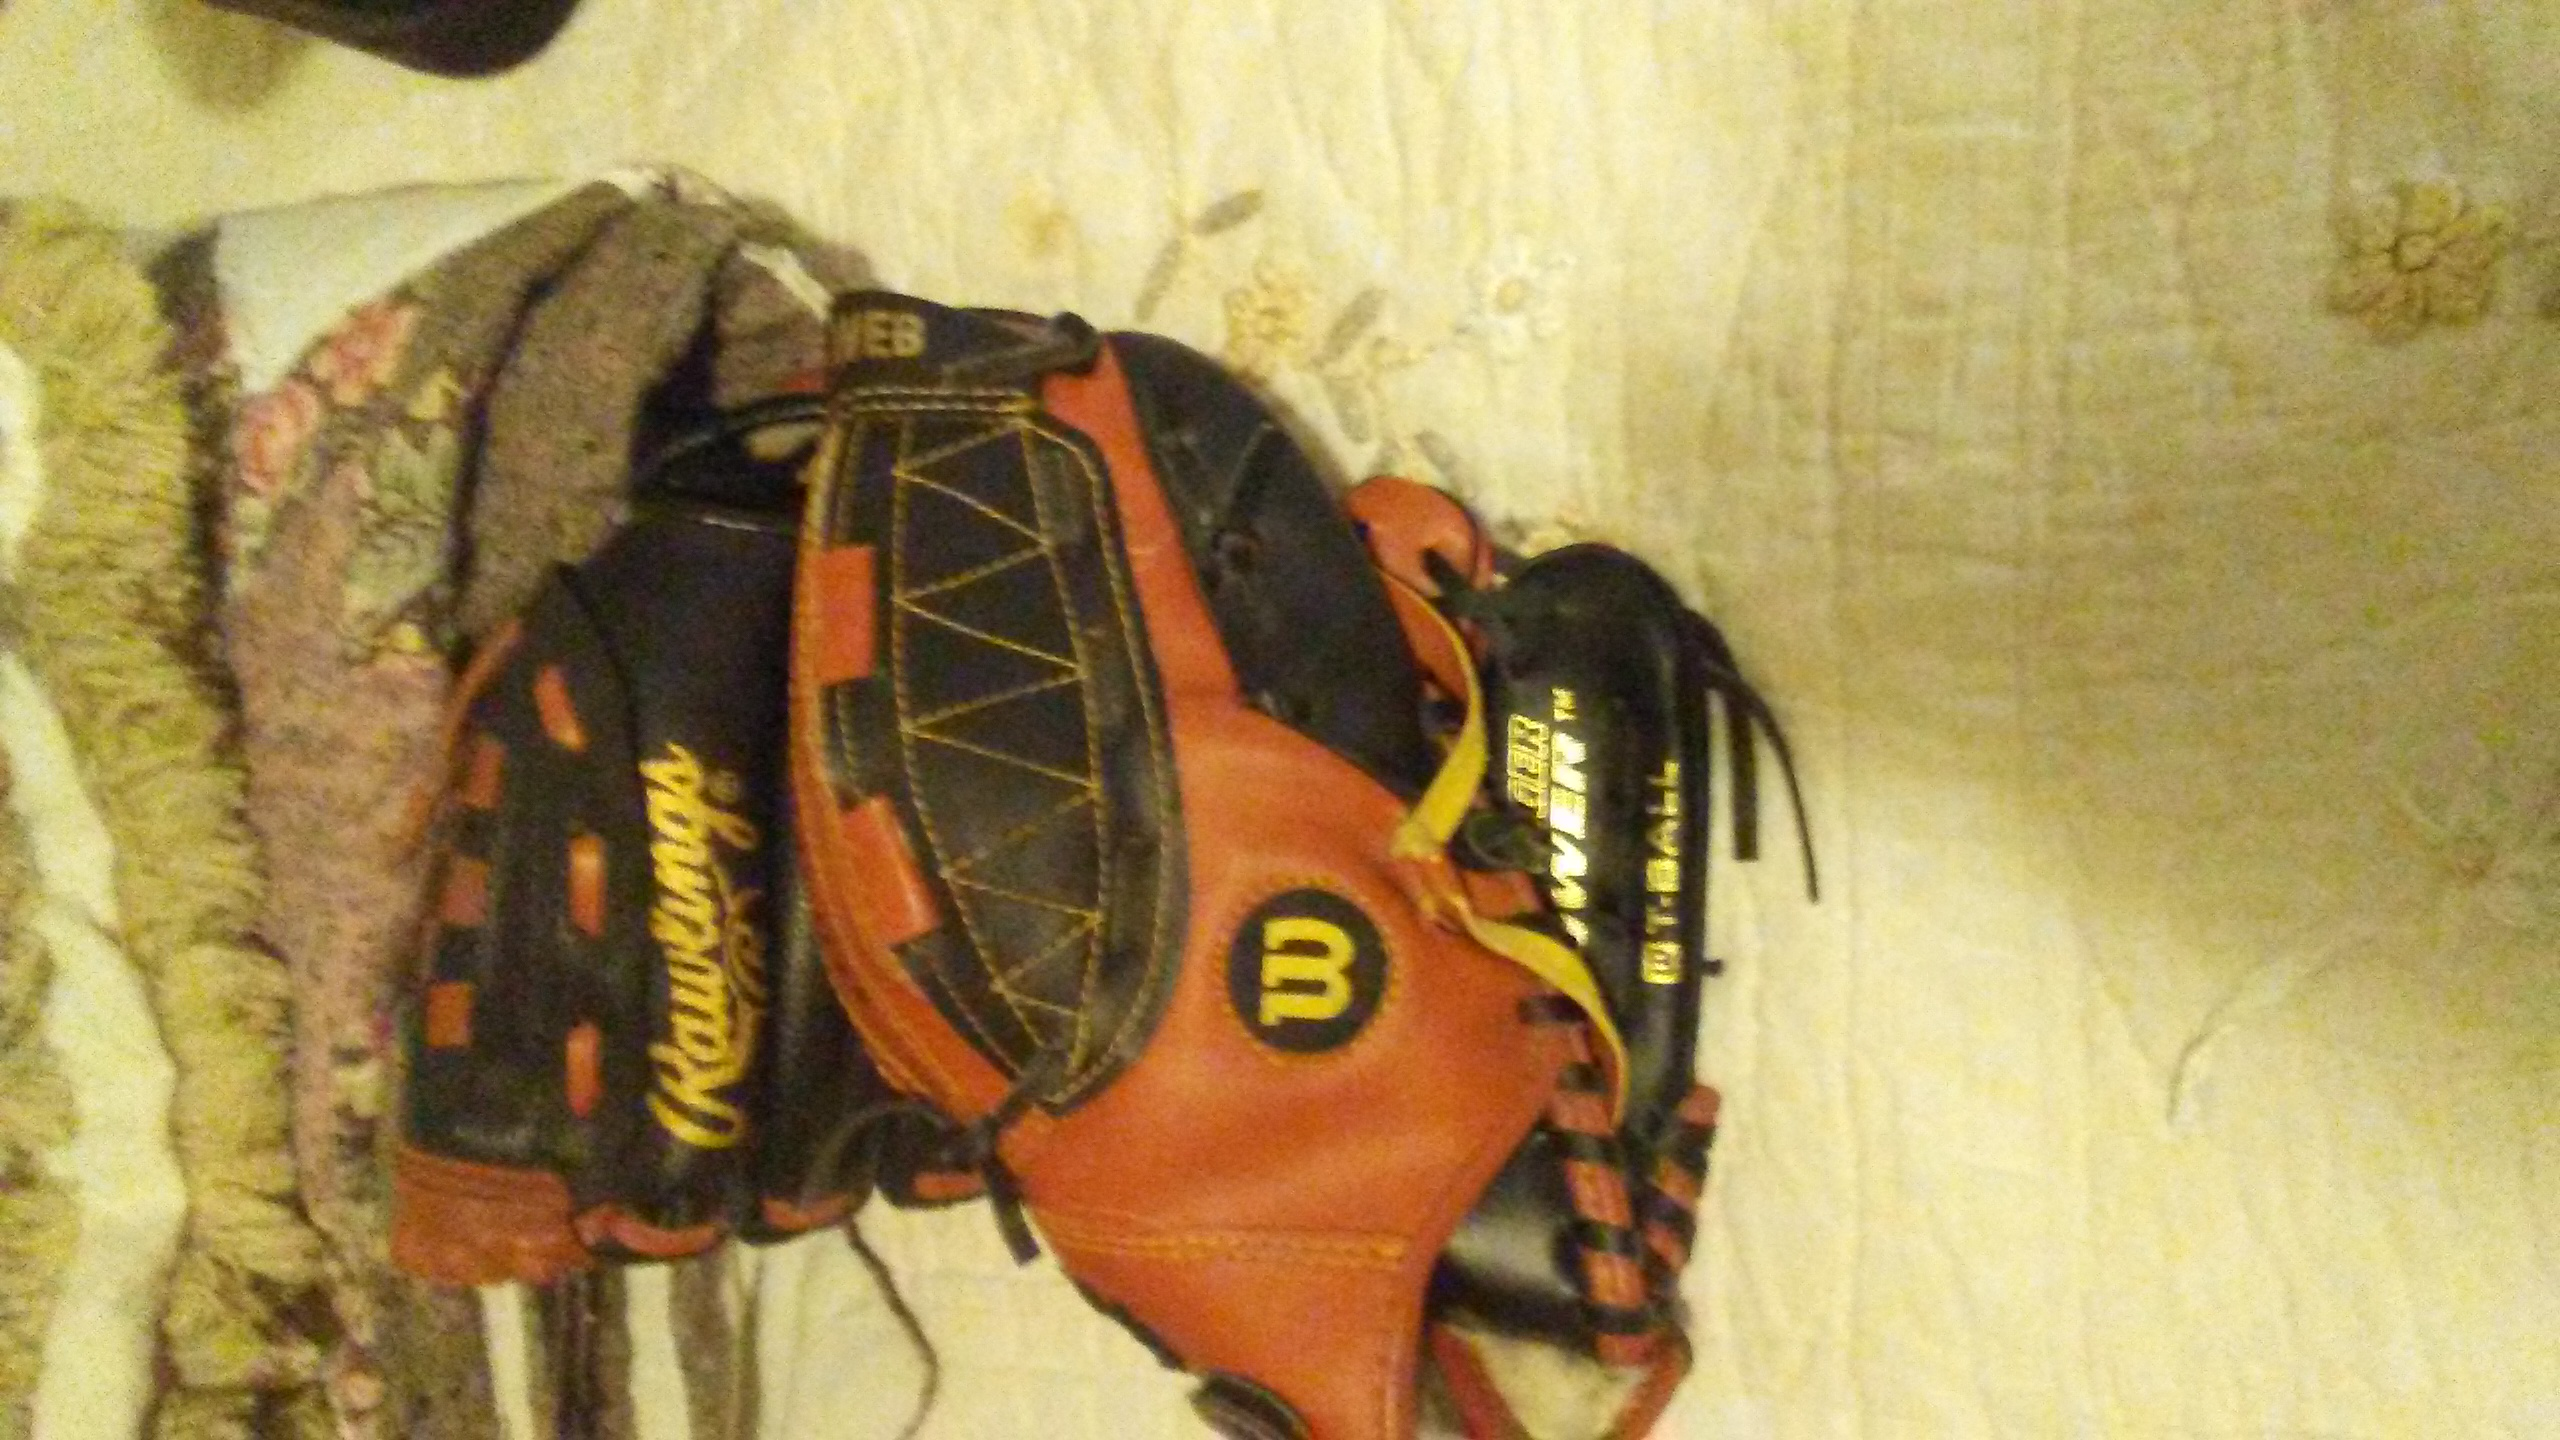 Rawlings and Wilson youth gloves